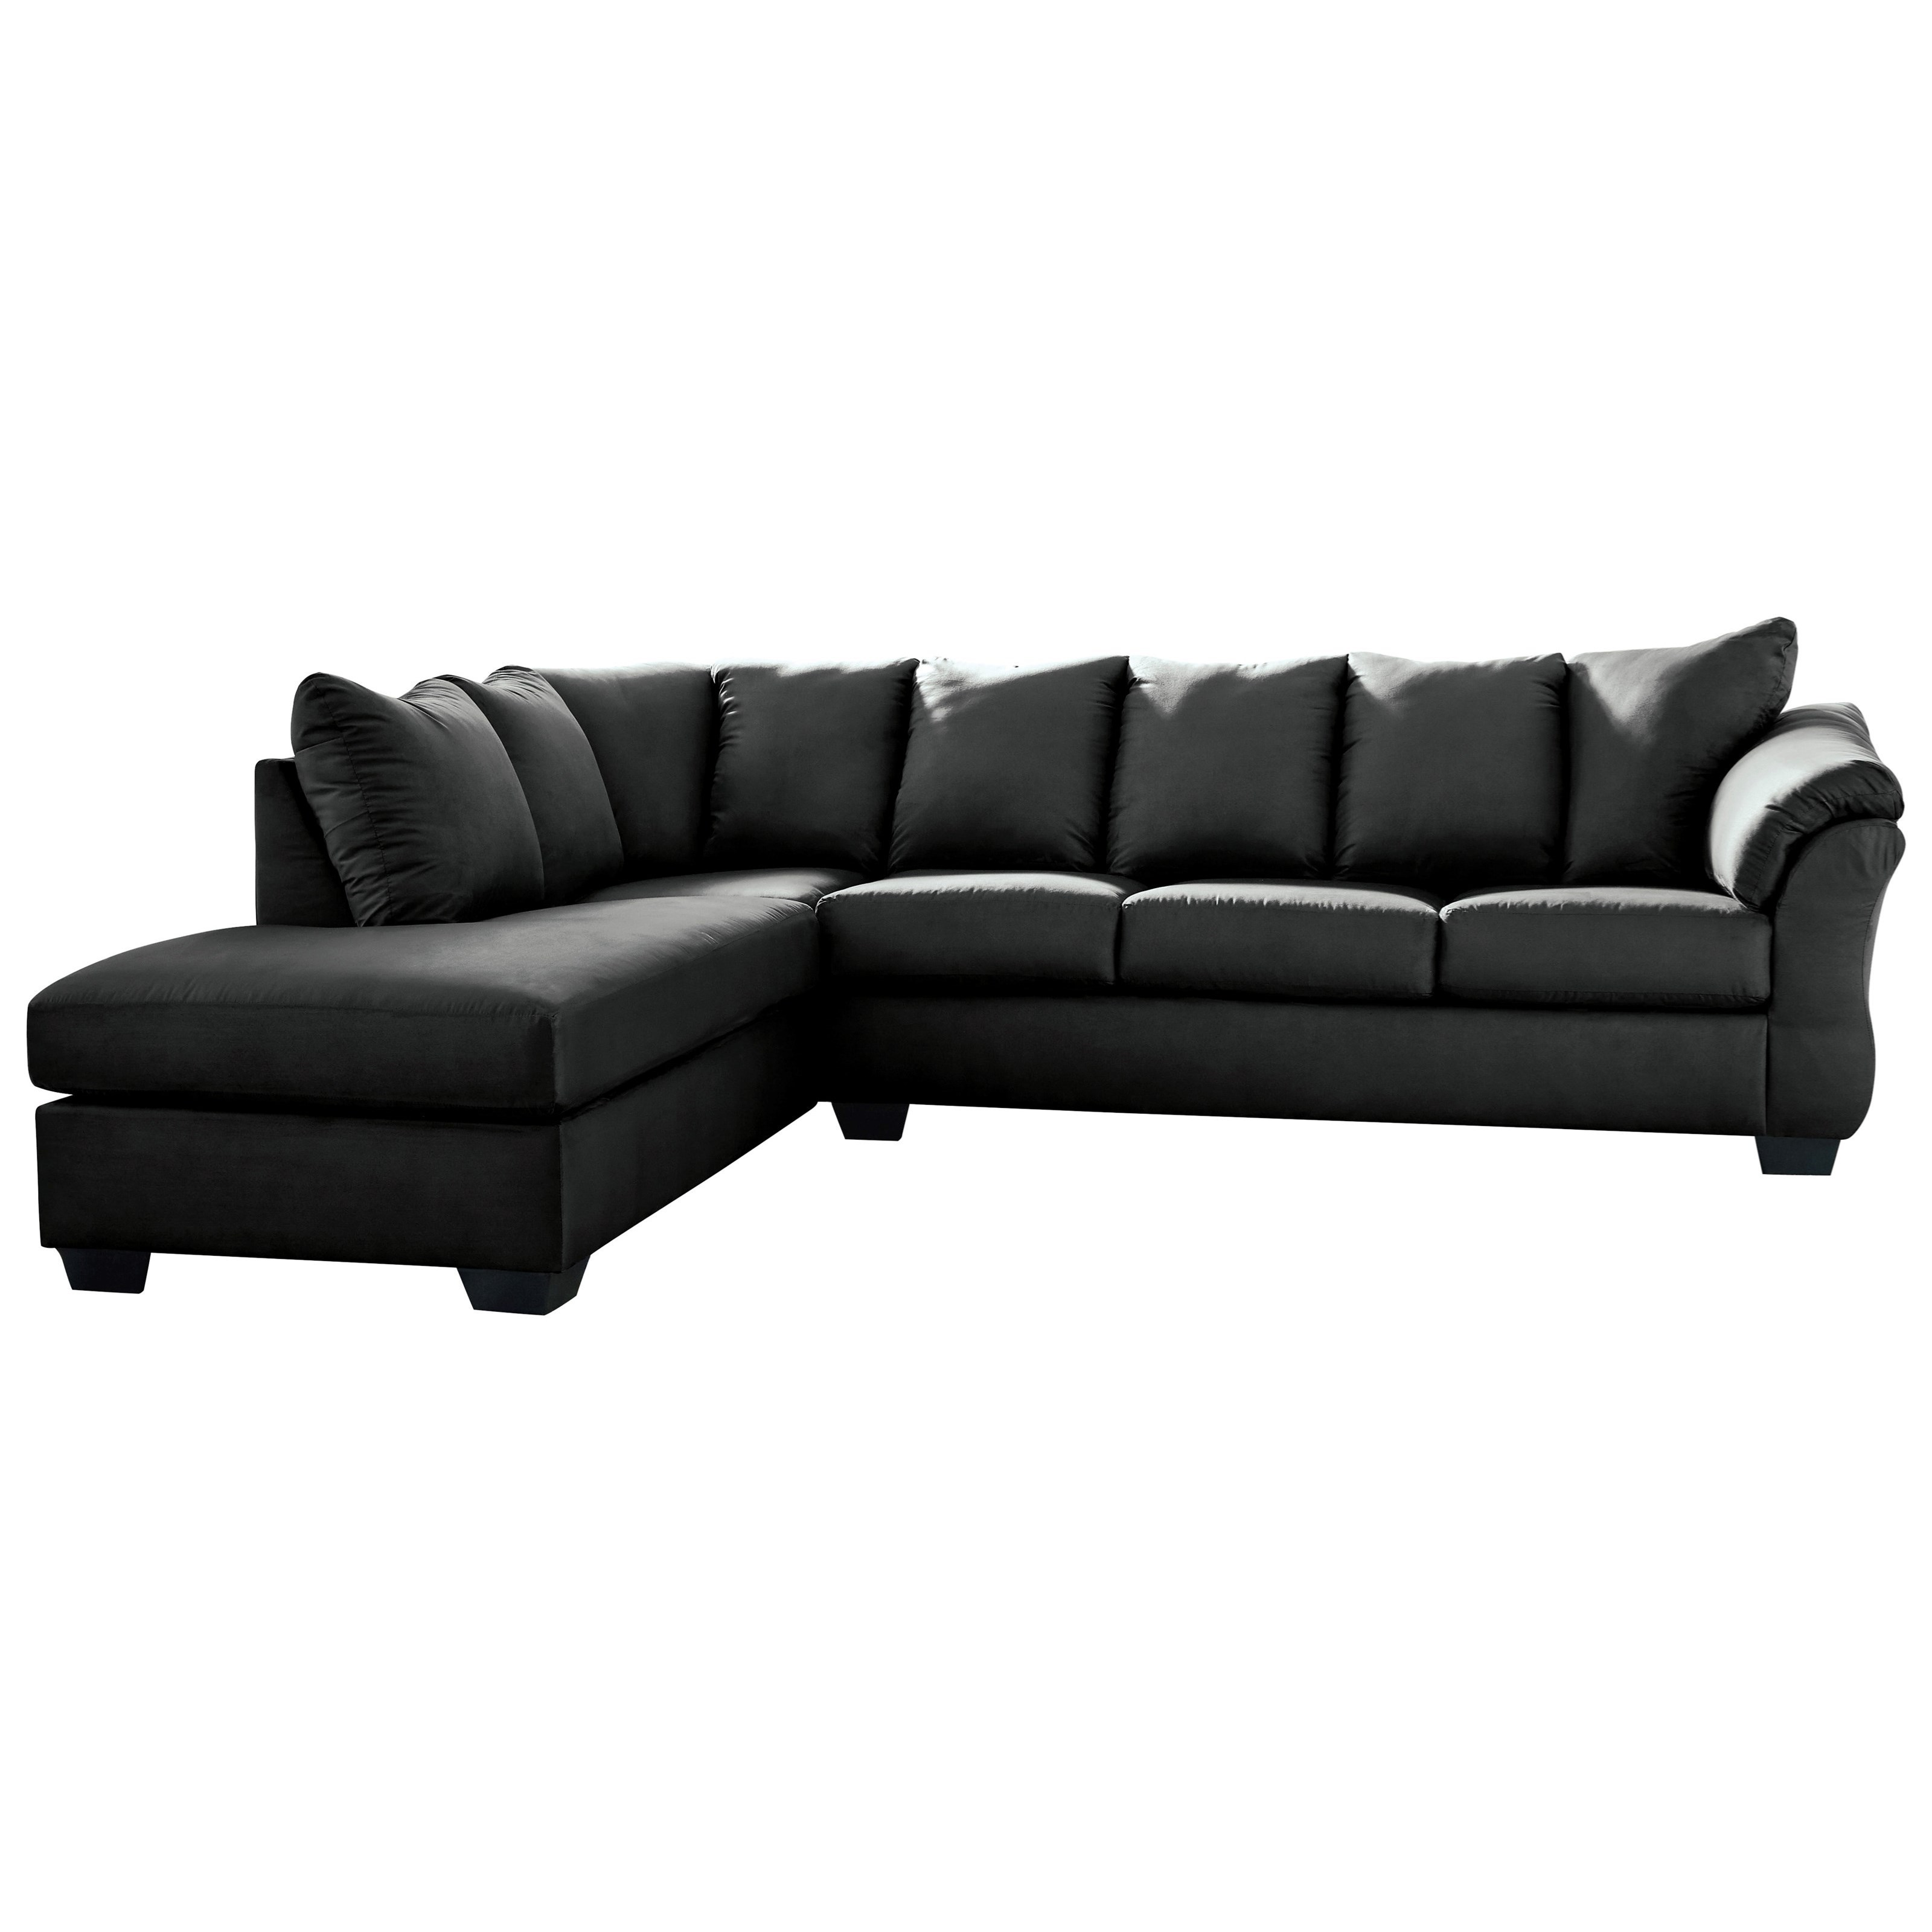 Darcy - Black 2-Piece Sectional Sofa with Chaise by Ashley (Signature Design) at Johnny Janosik